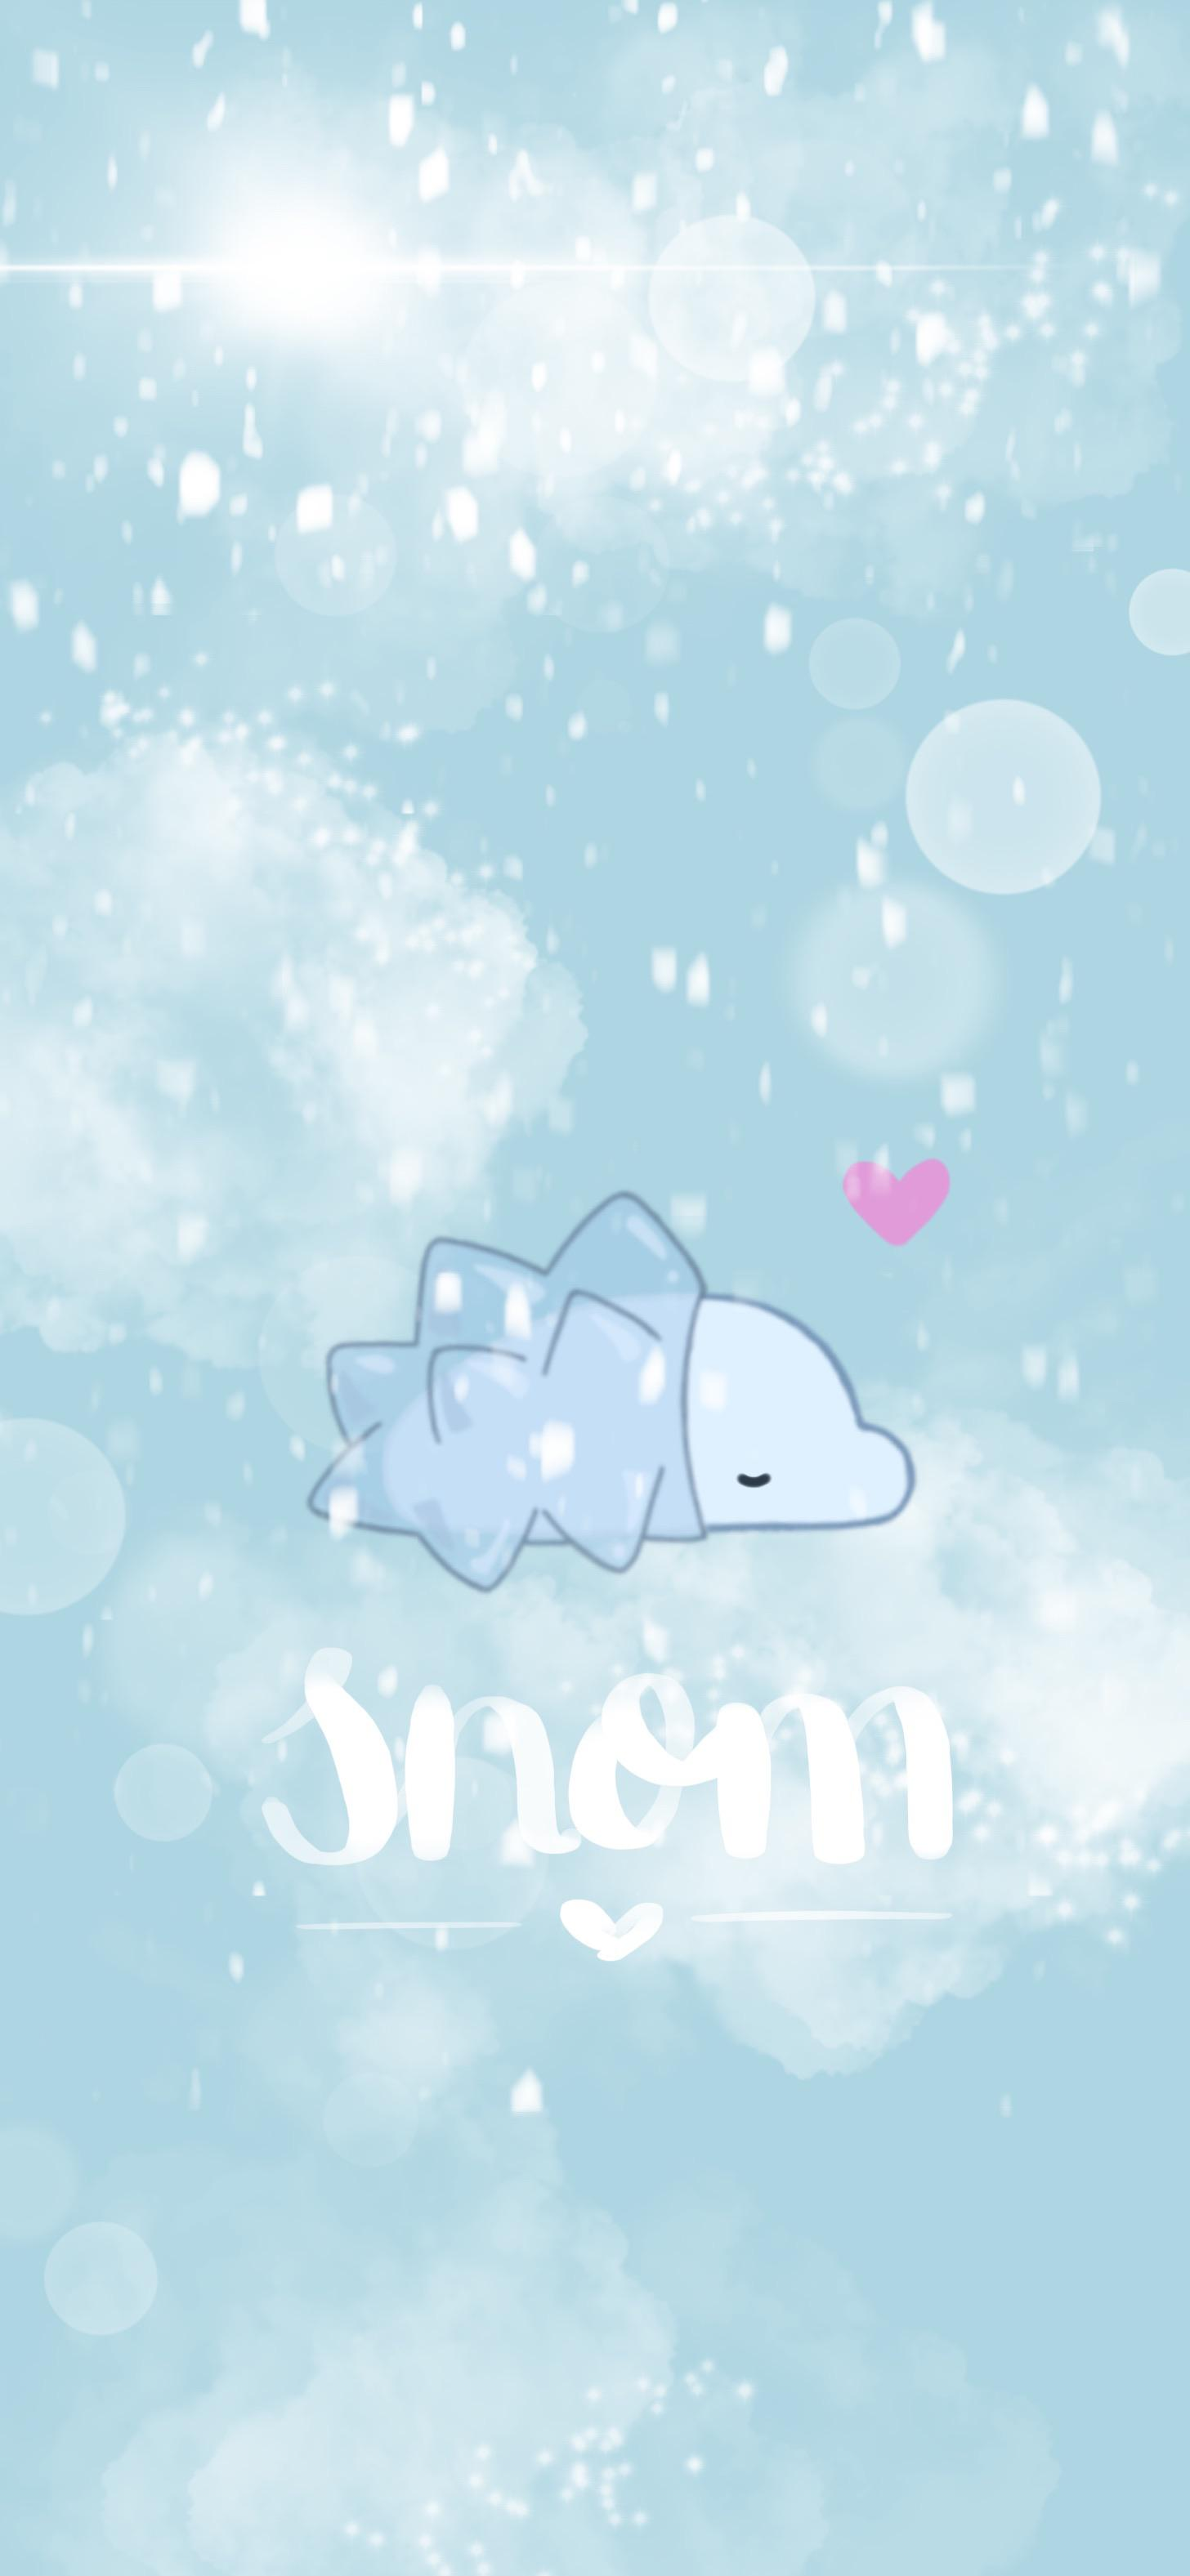 A snowy snom for my phone background this winter or forever 1456x3153